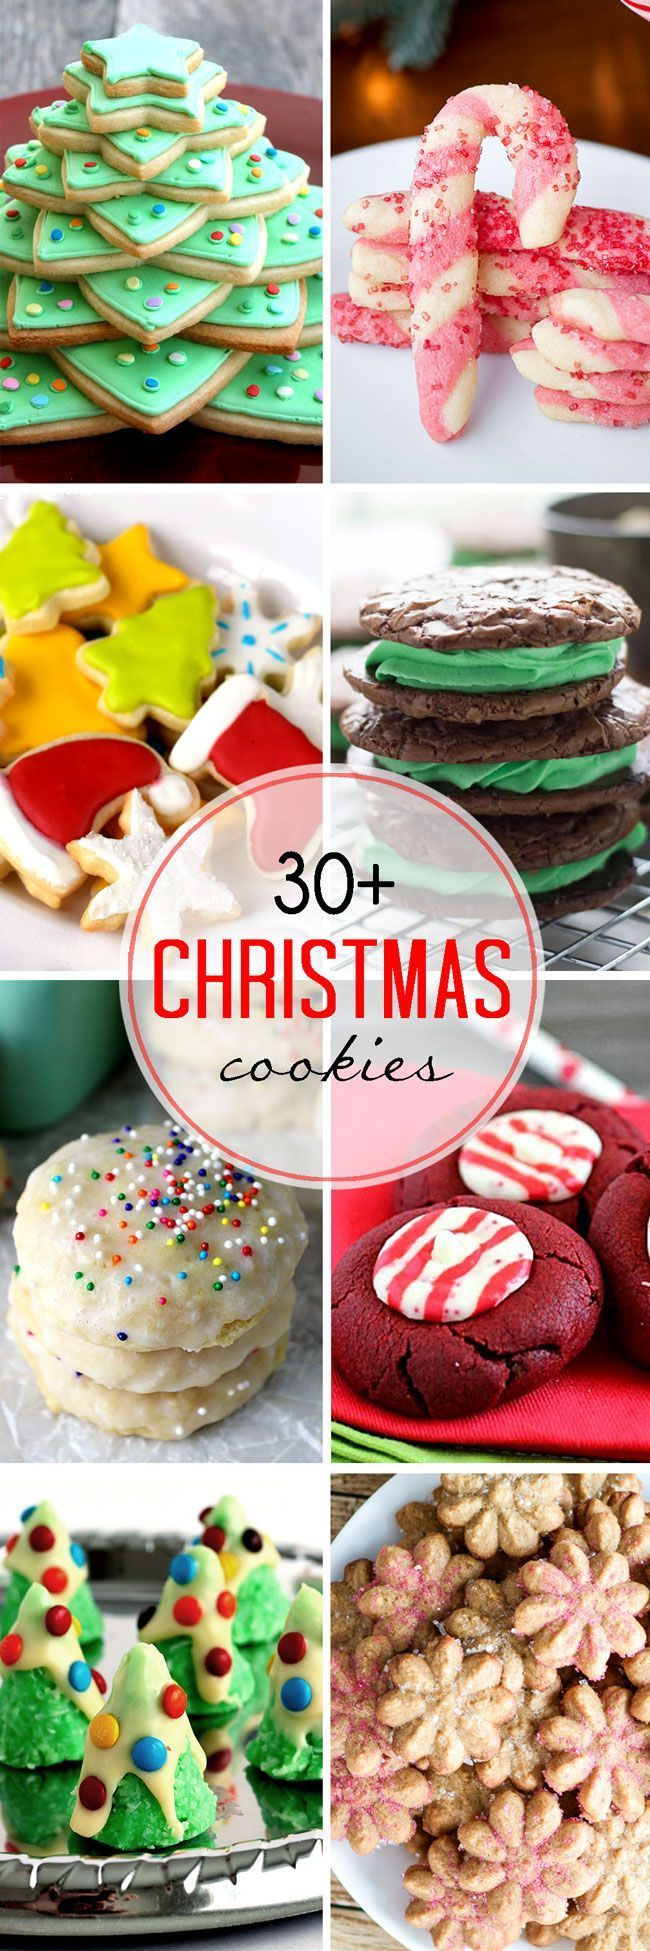 What's better than Christmas cookies?  EASY Christmas cookies!  Here you'll find 30 simple cookie recipe that will make the holiday season sweeter! http://lemonsforlulu.com